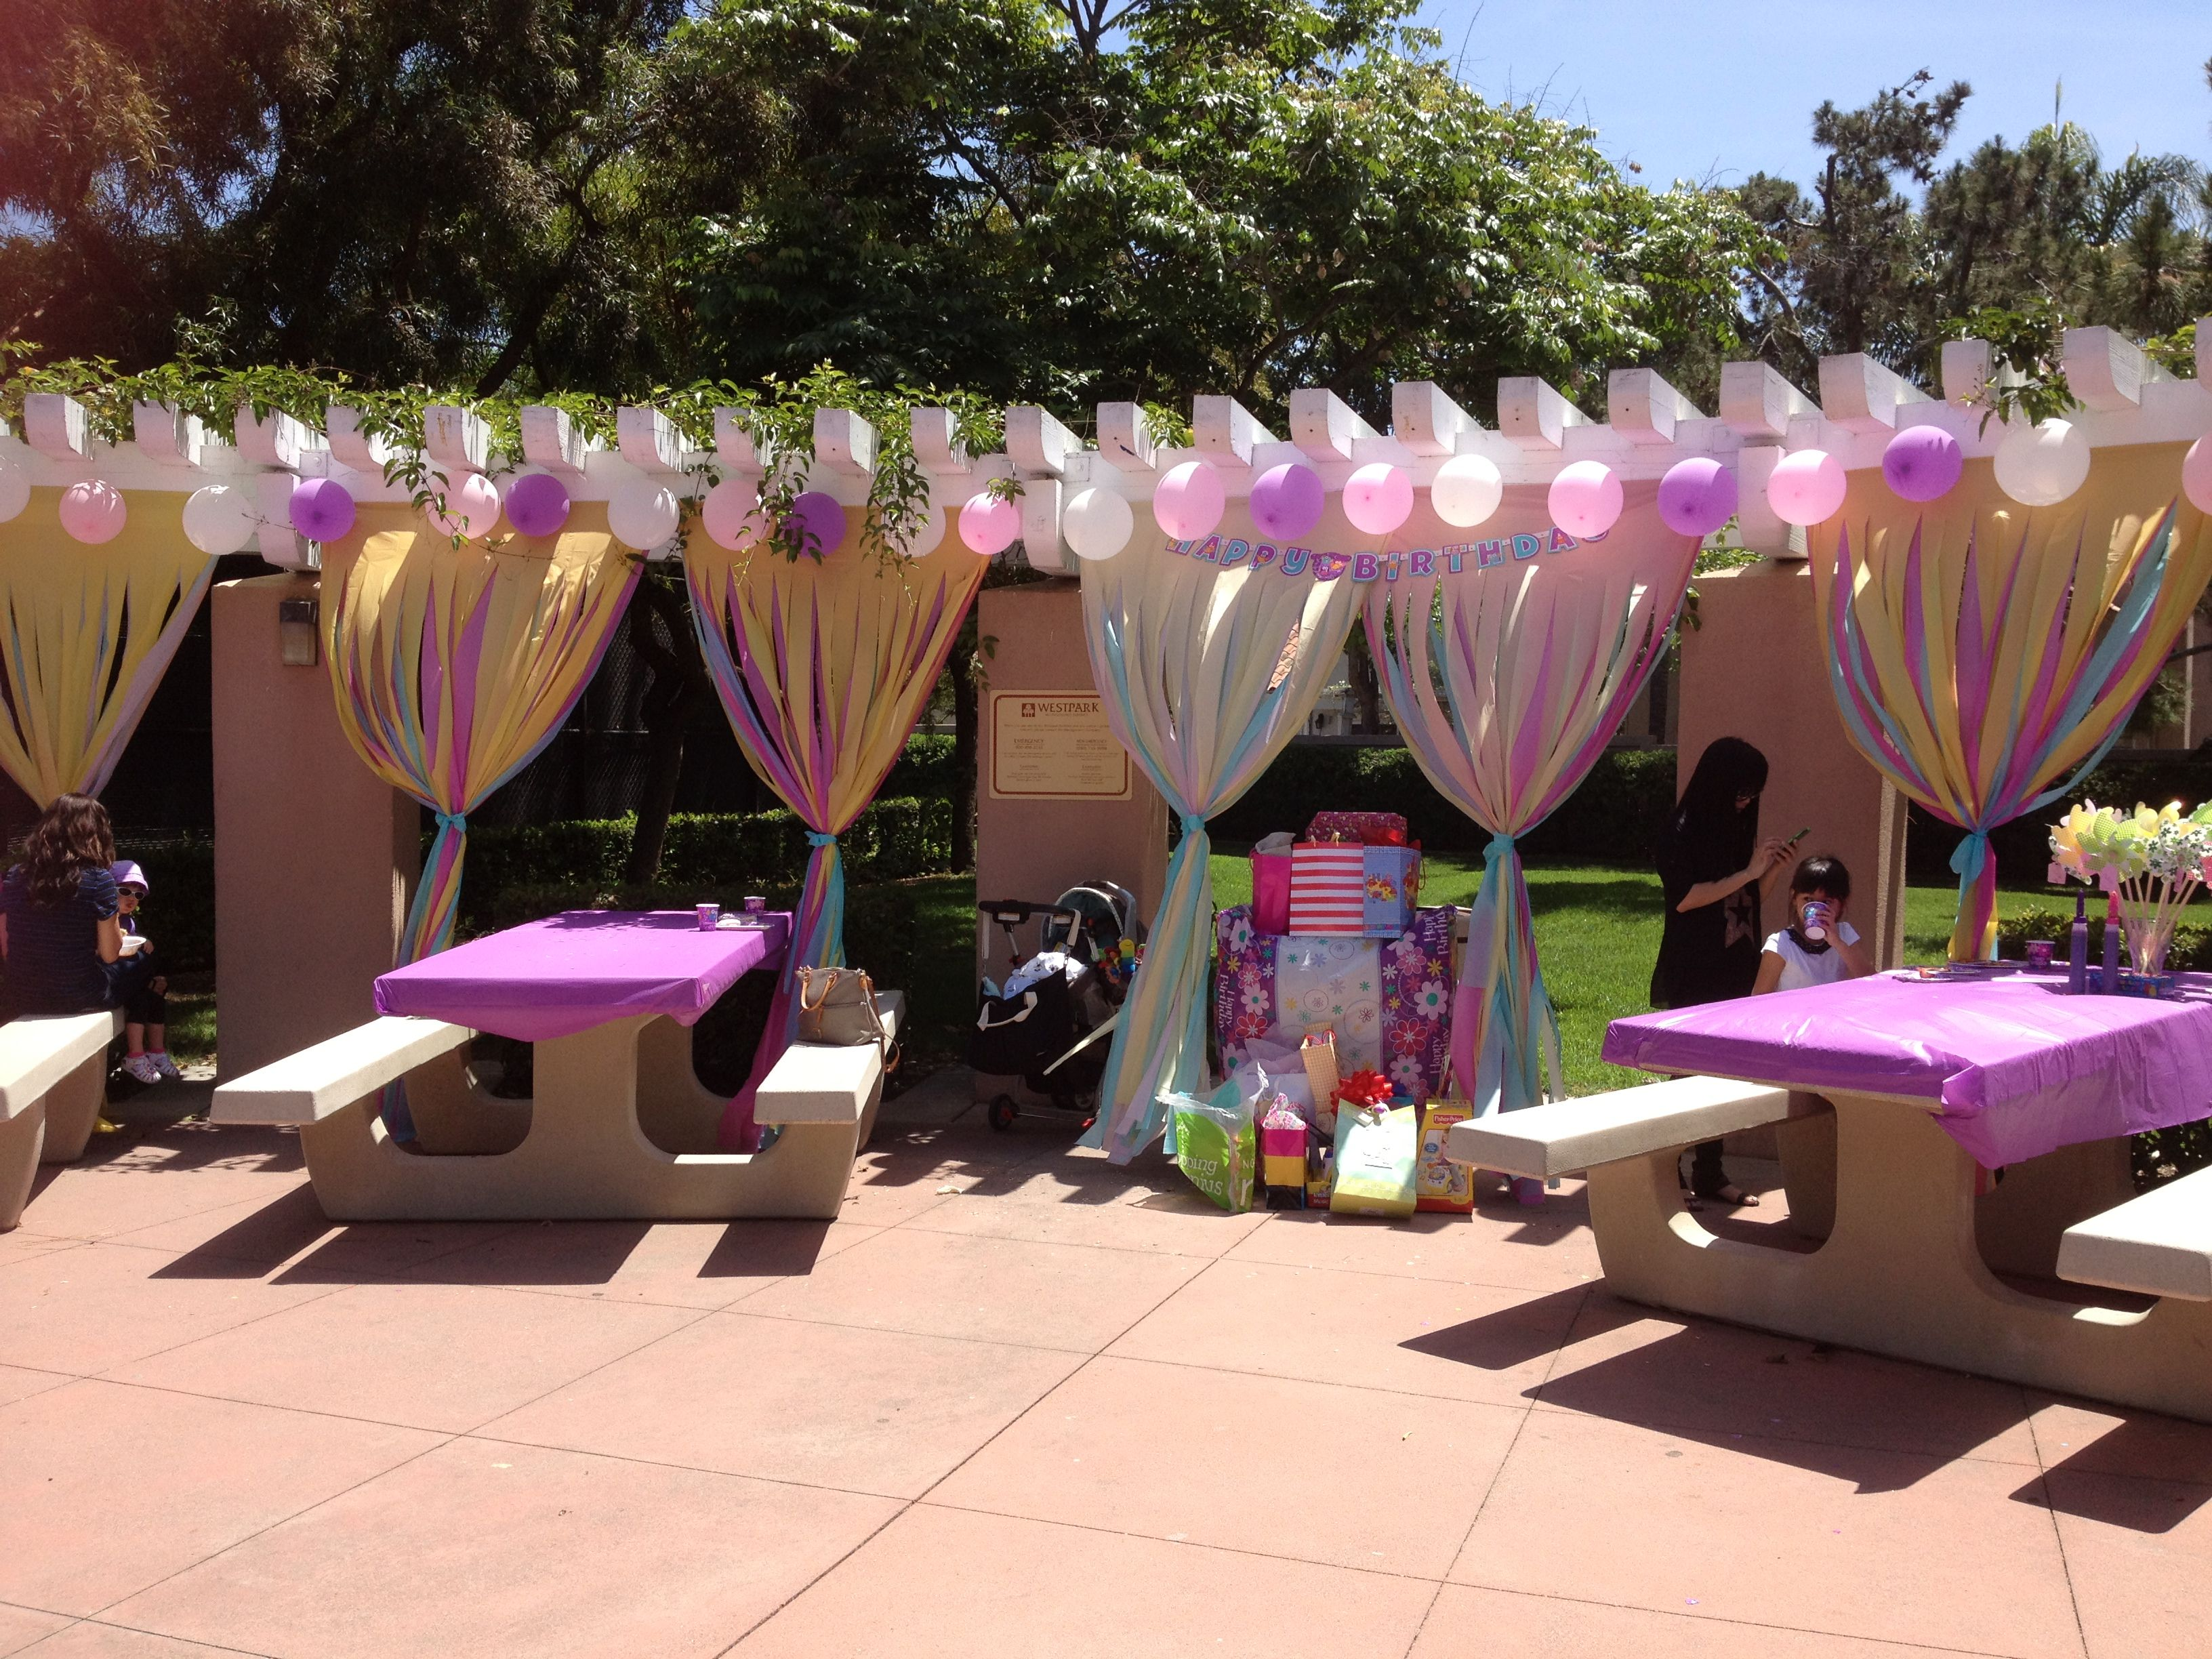 Birthday decor at the park birthday party pinterest for B day decoration ideas